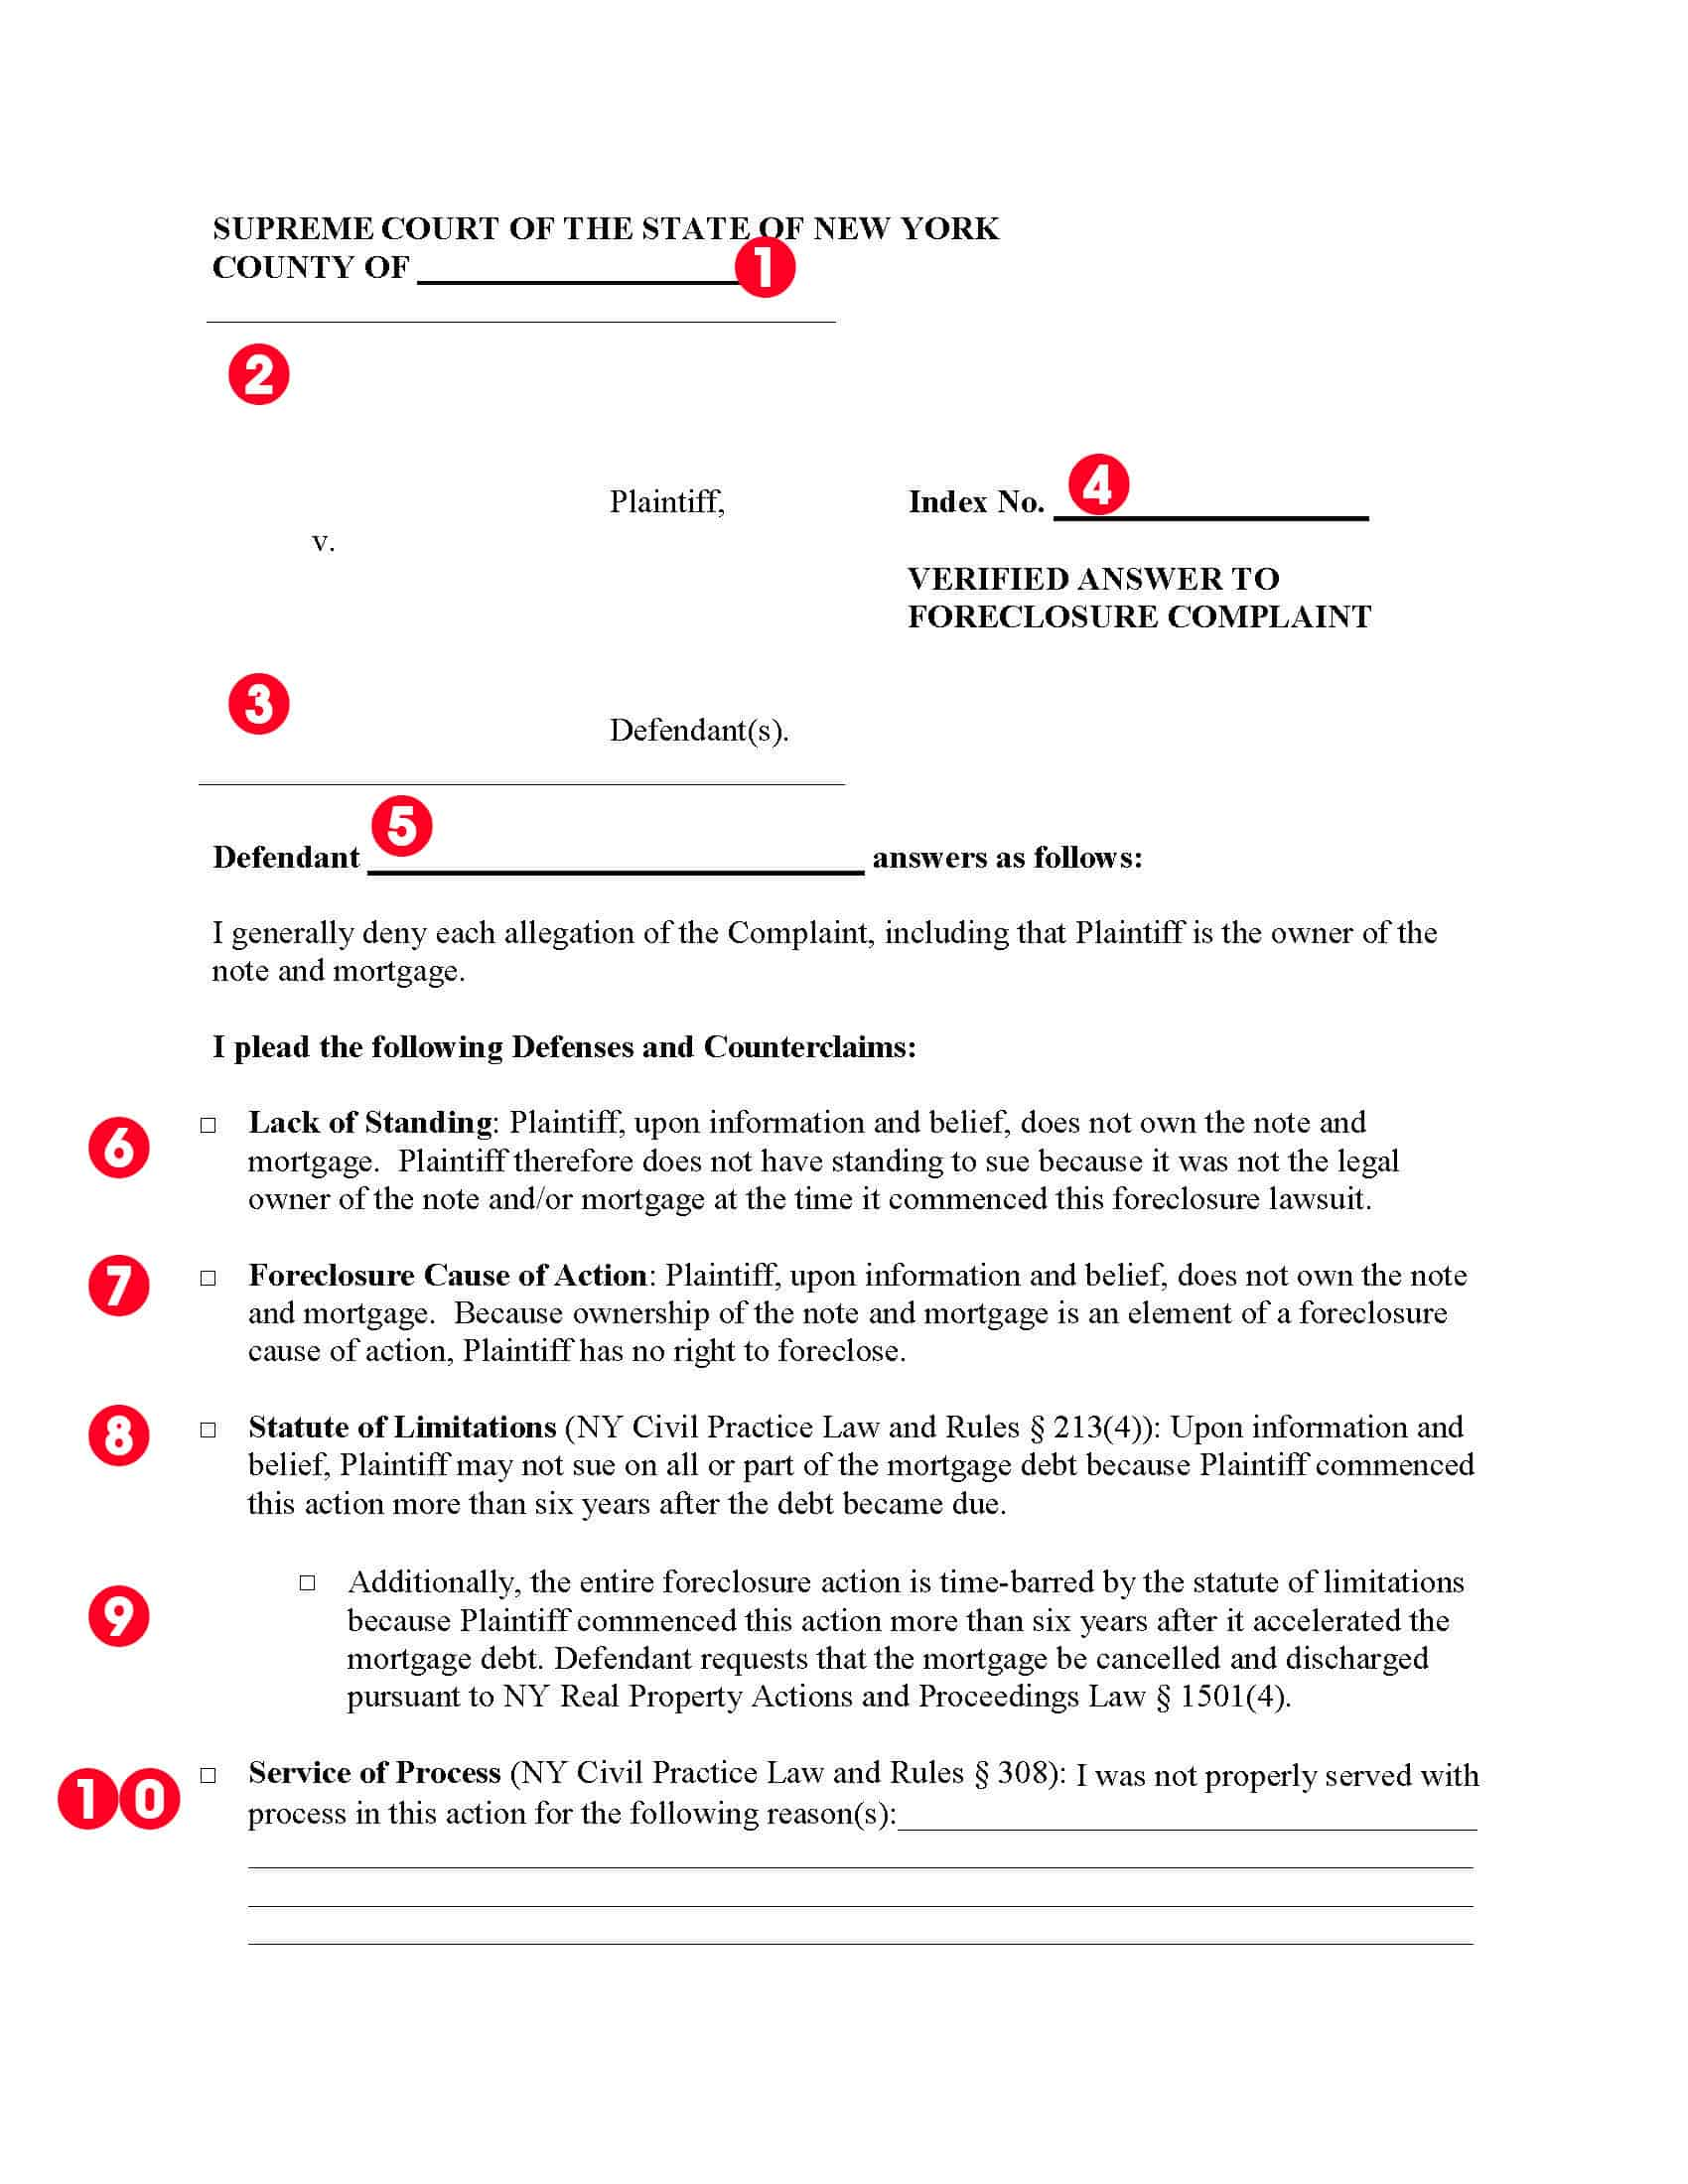 New York Sample Foreclosure Answer Page 1 10 items